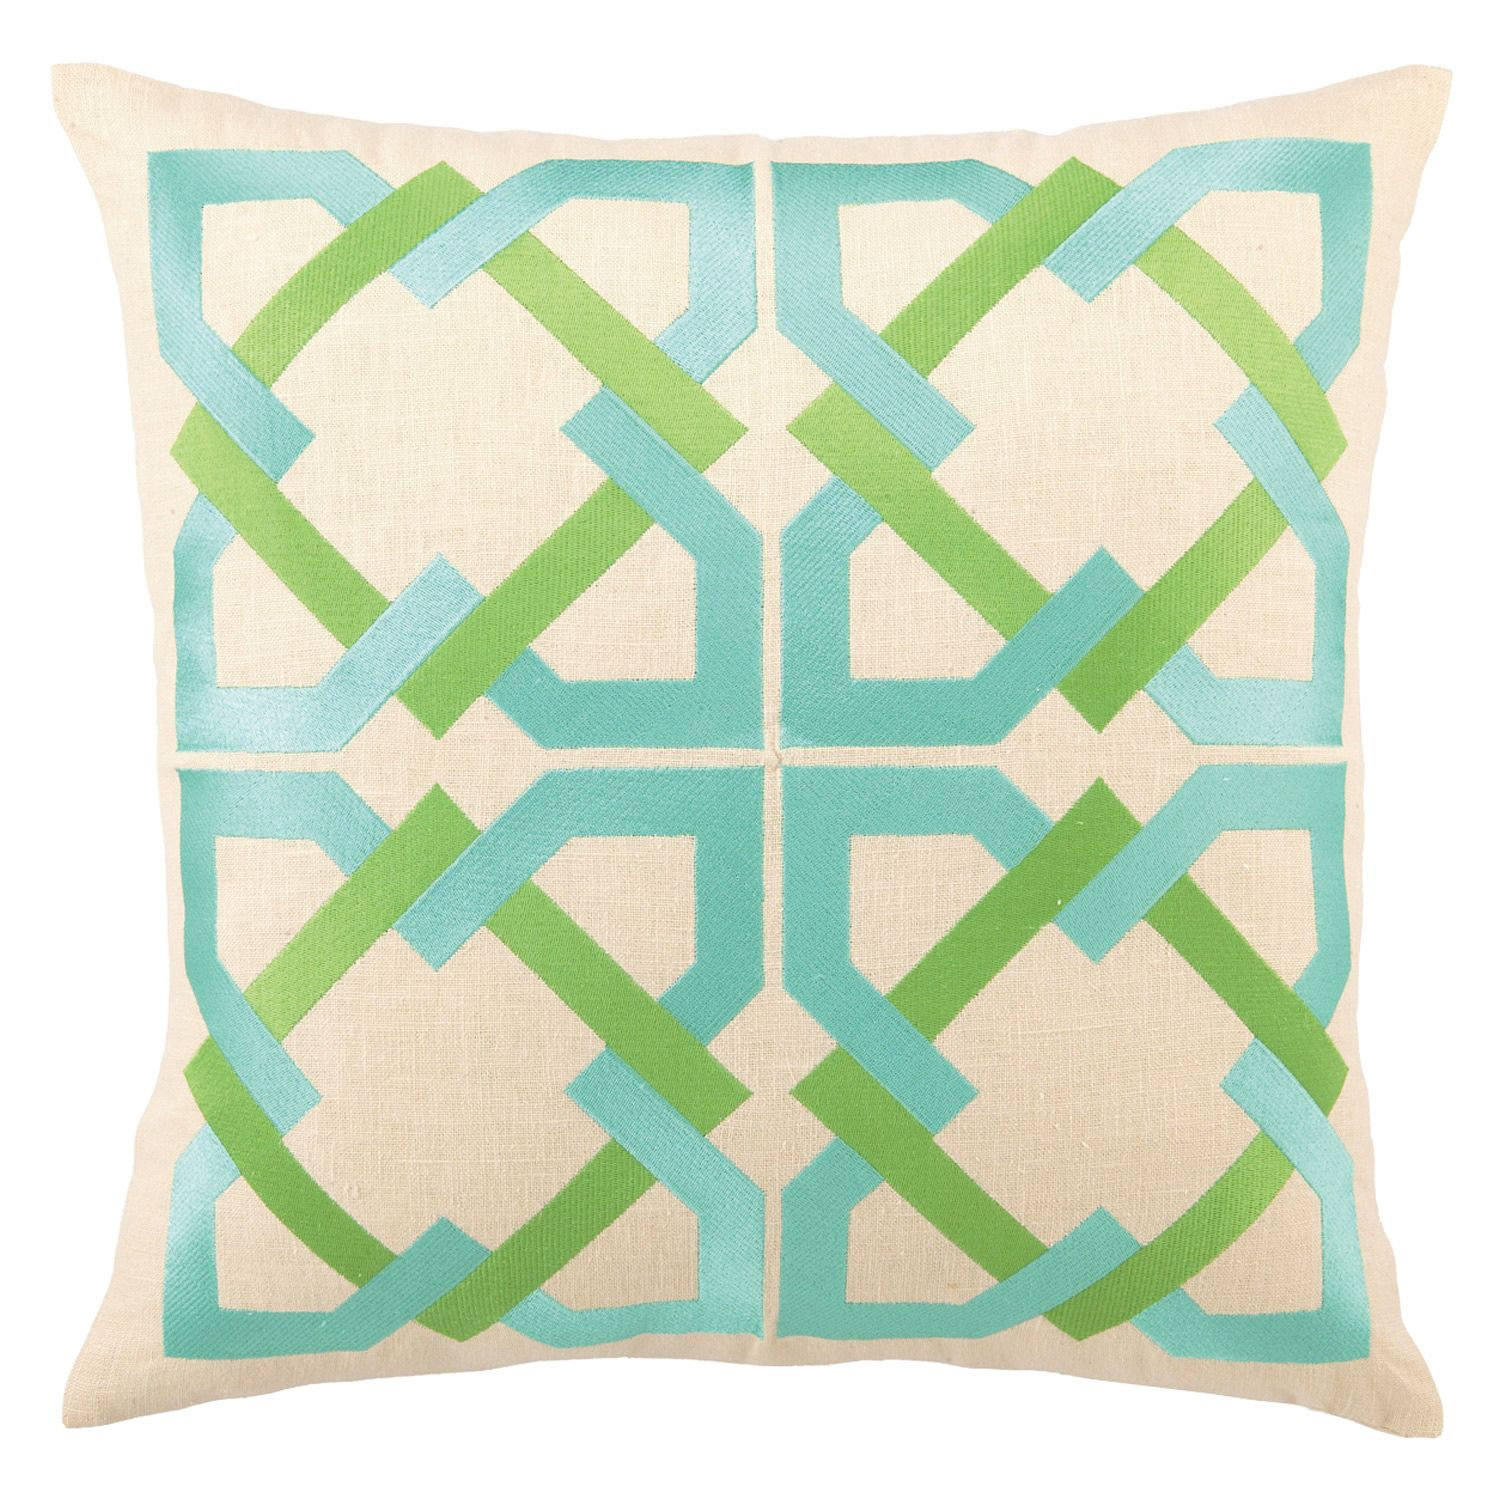 related to ikat decorative santorini topic trellis ebay uk amazon abstract trina x bedding p turk interesting dillards pillows pillow outstanding macys canada pi yellow embroidered coral